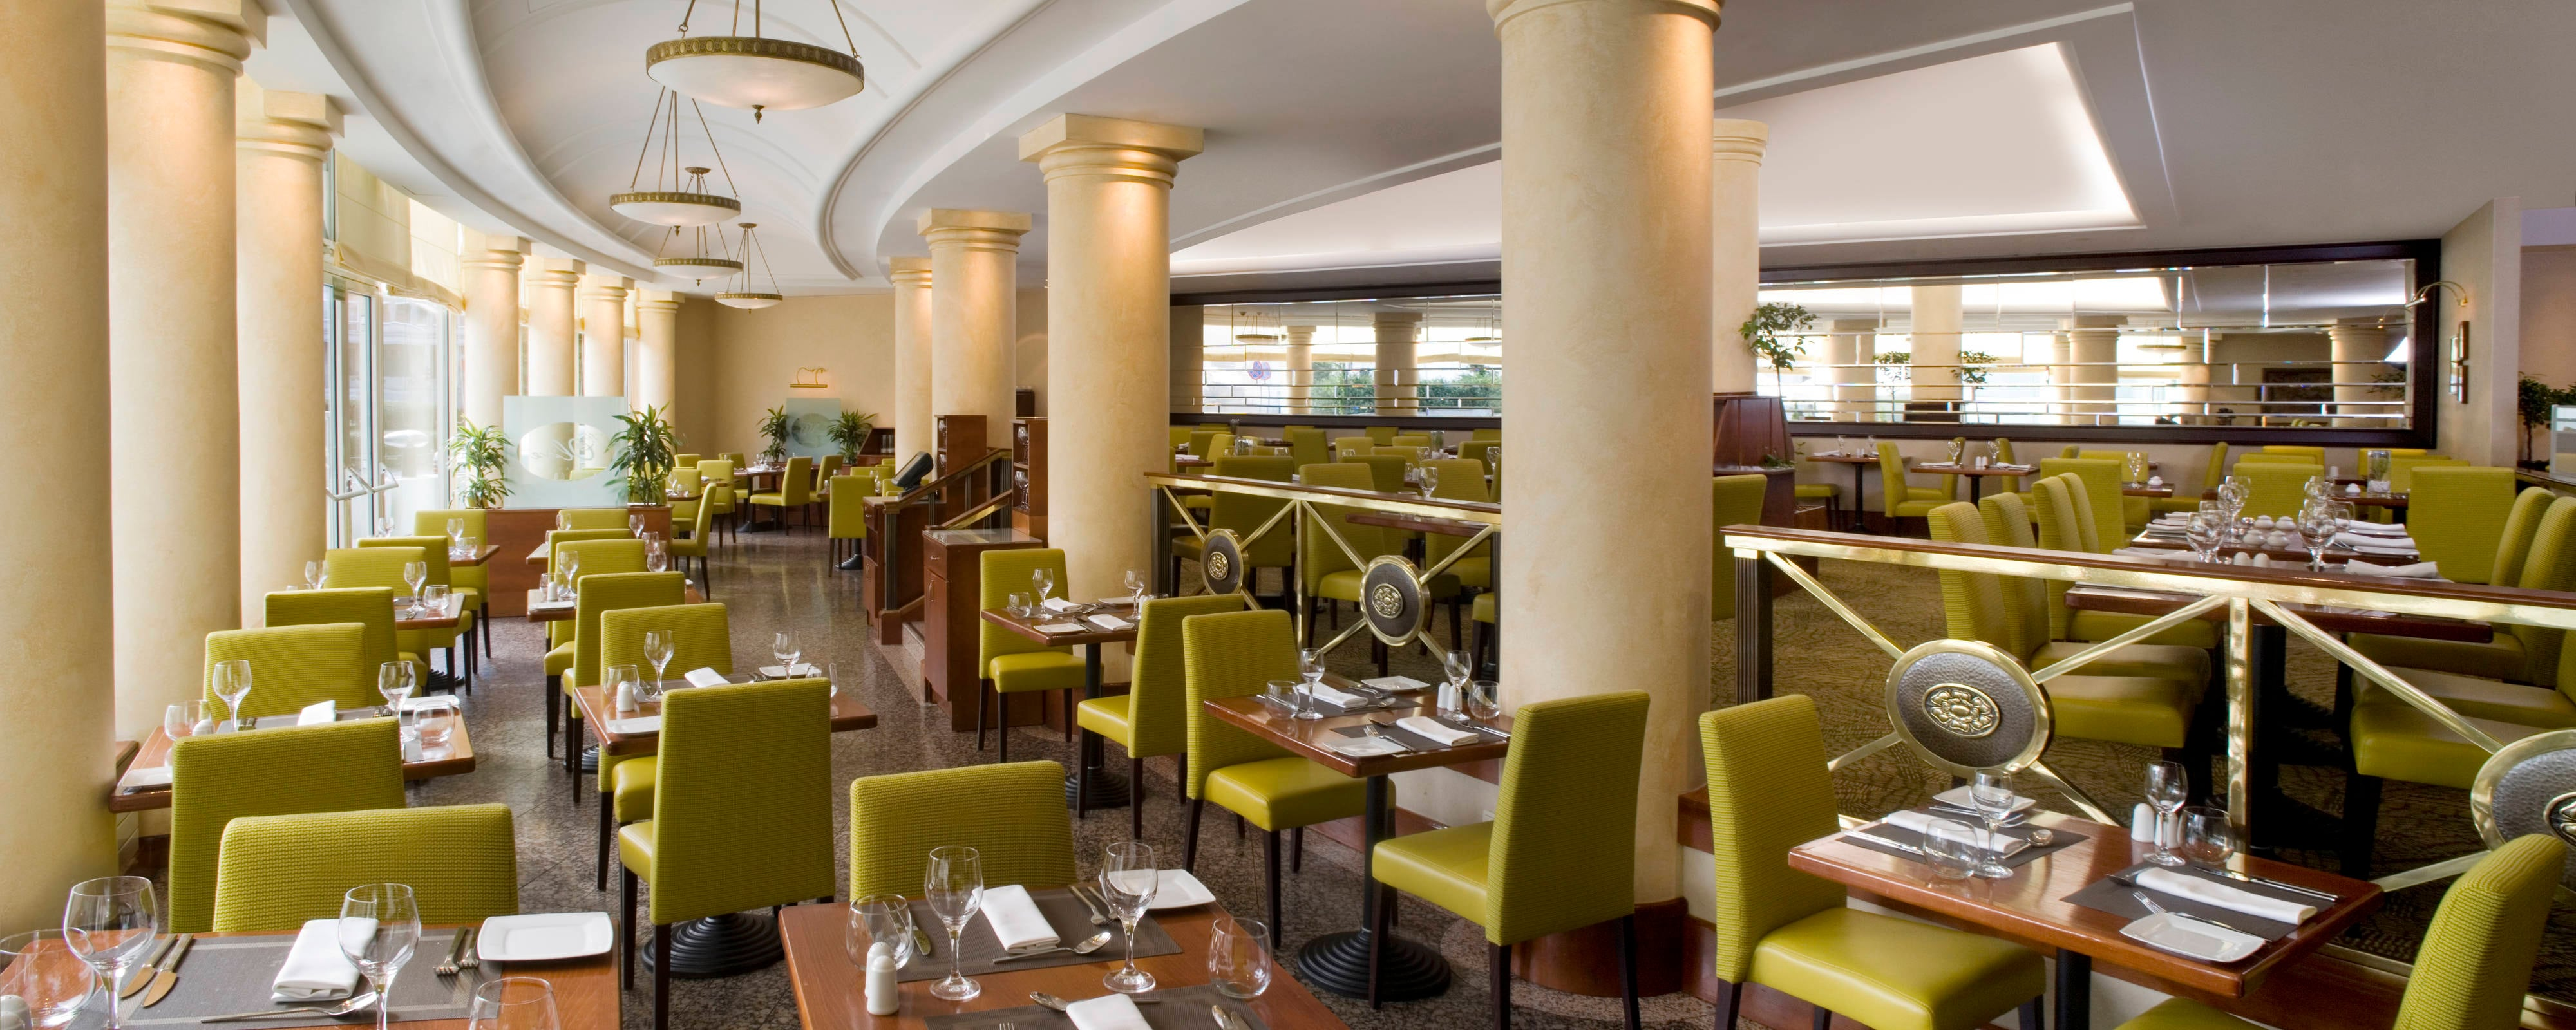 Warsaw hotel restaurants and lounges | Sheraton Warsaw Hotel